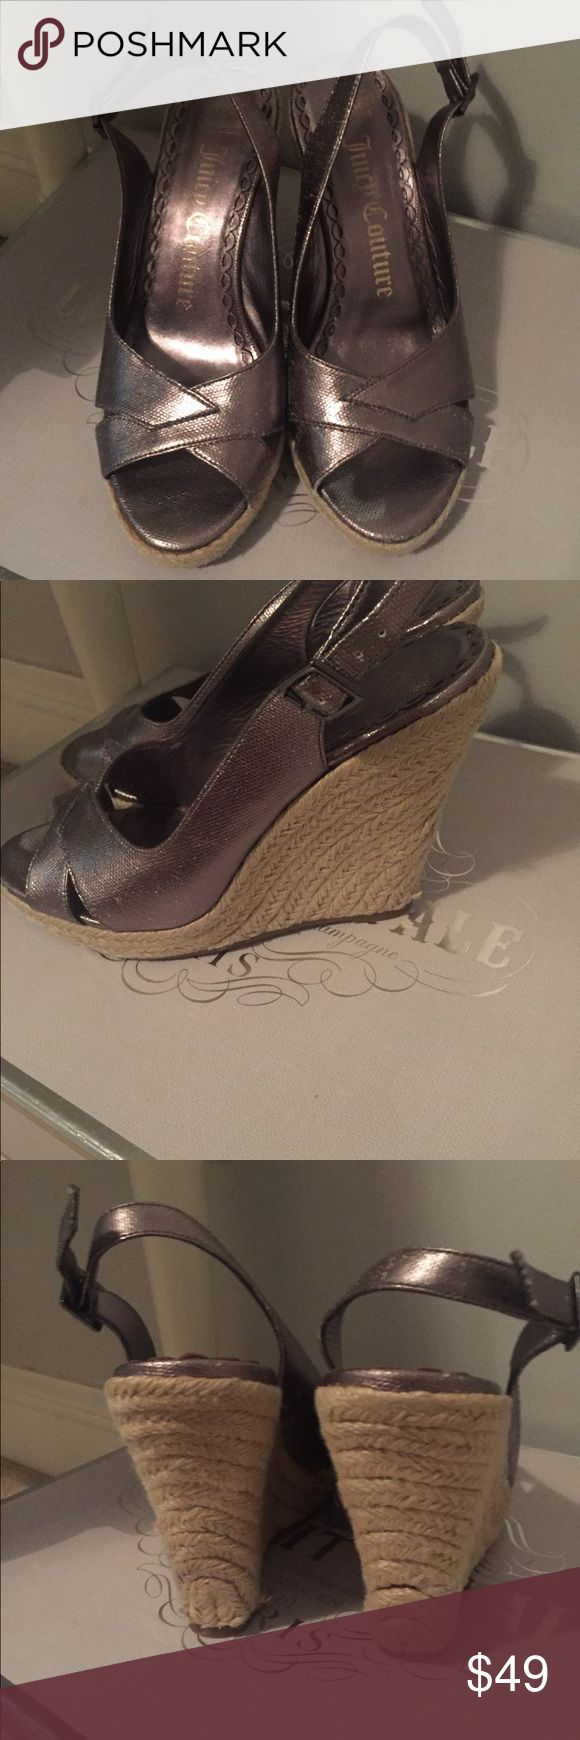 Juicy couture silver espadrille wedges 7.5 Lightly worn! Juicy Couture Shoes Wedges